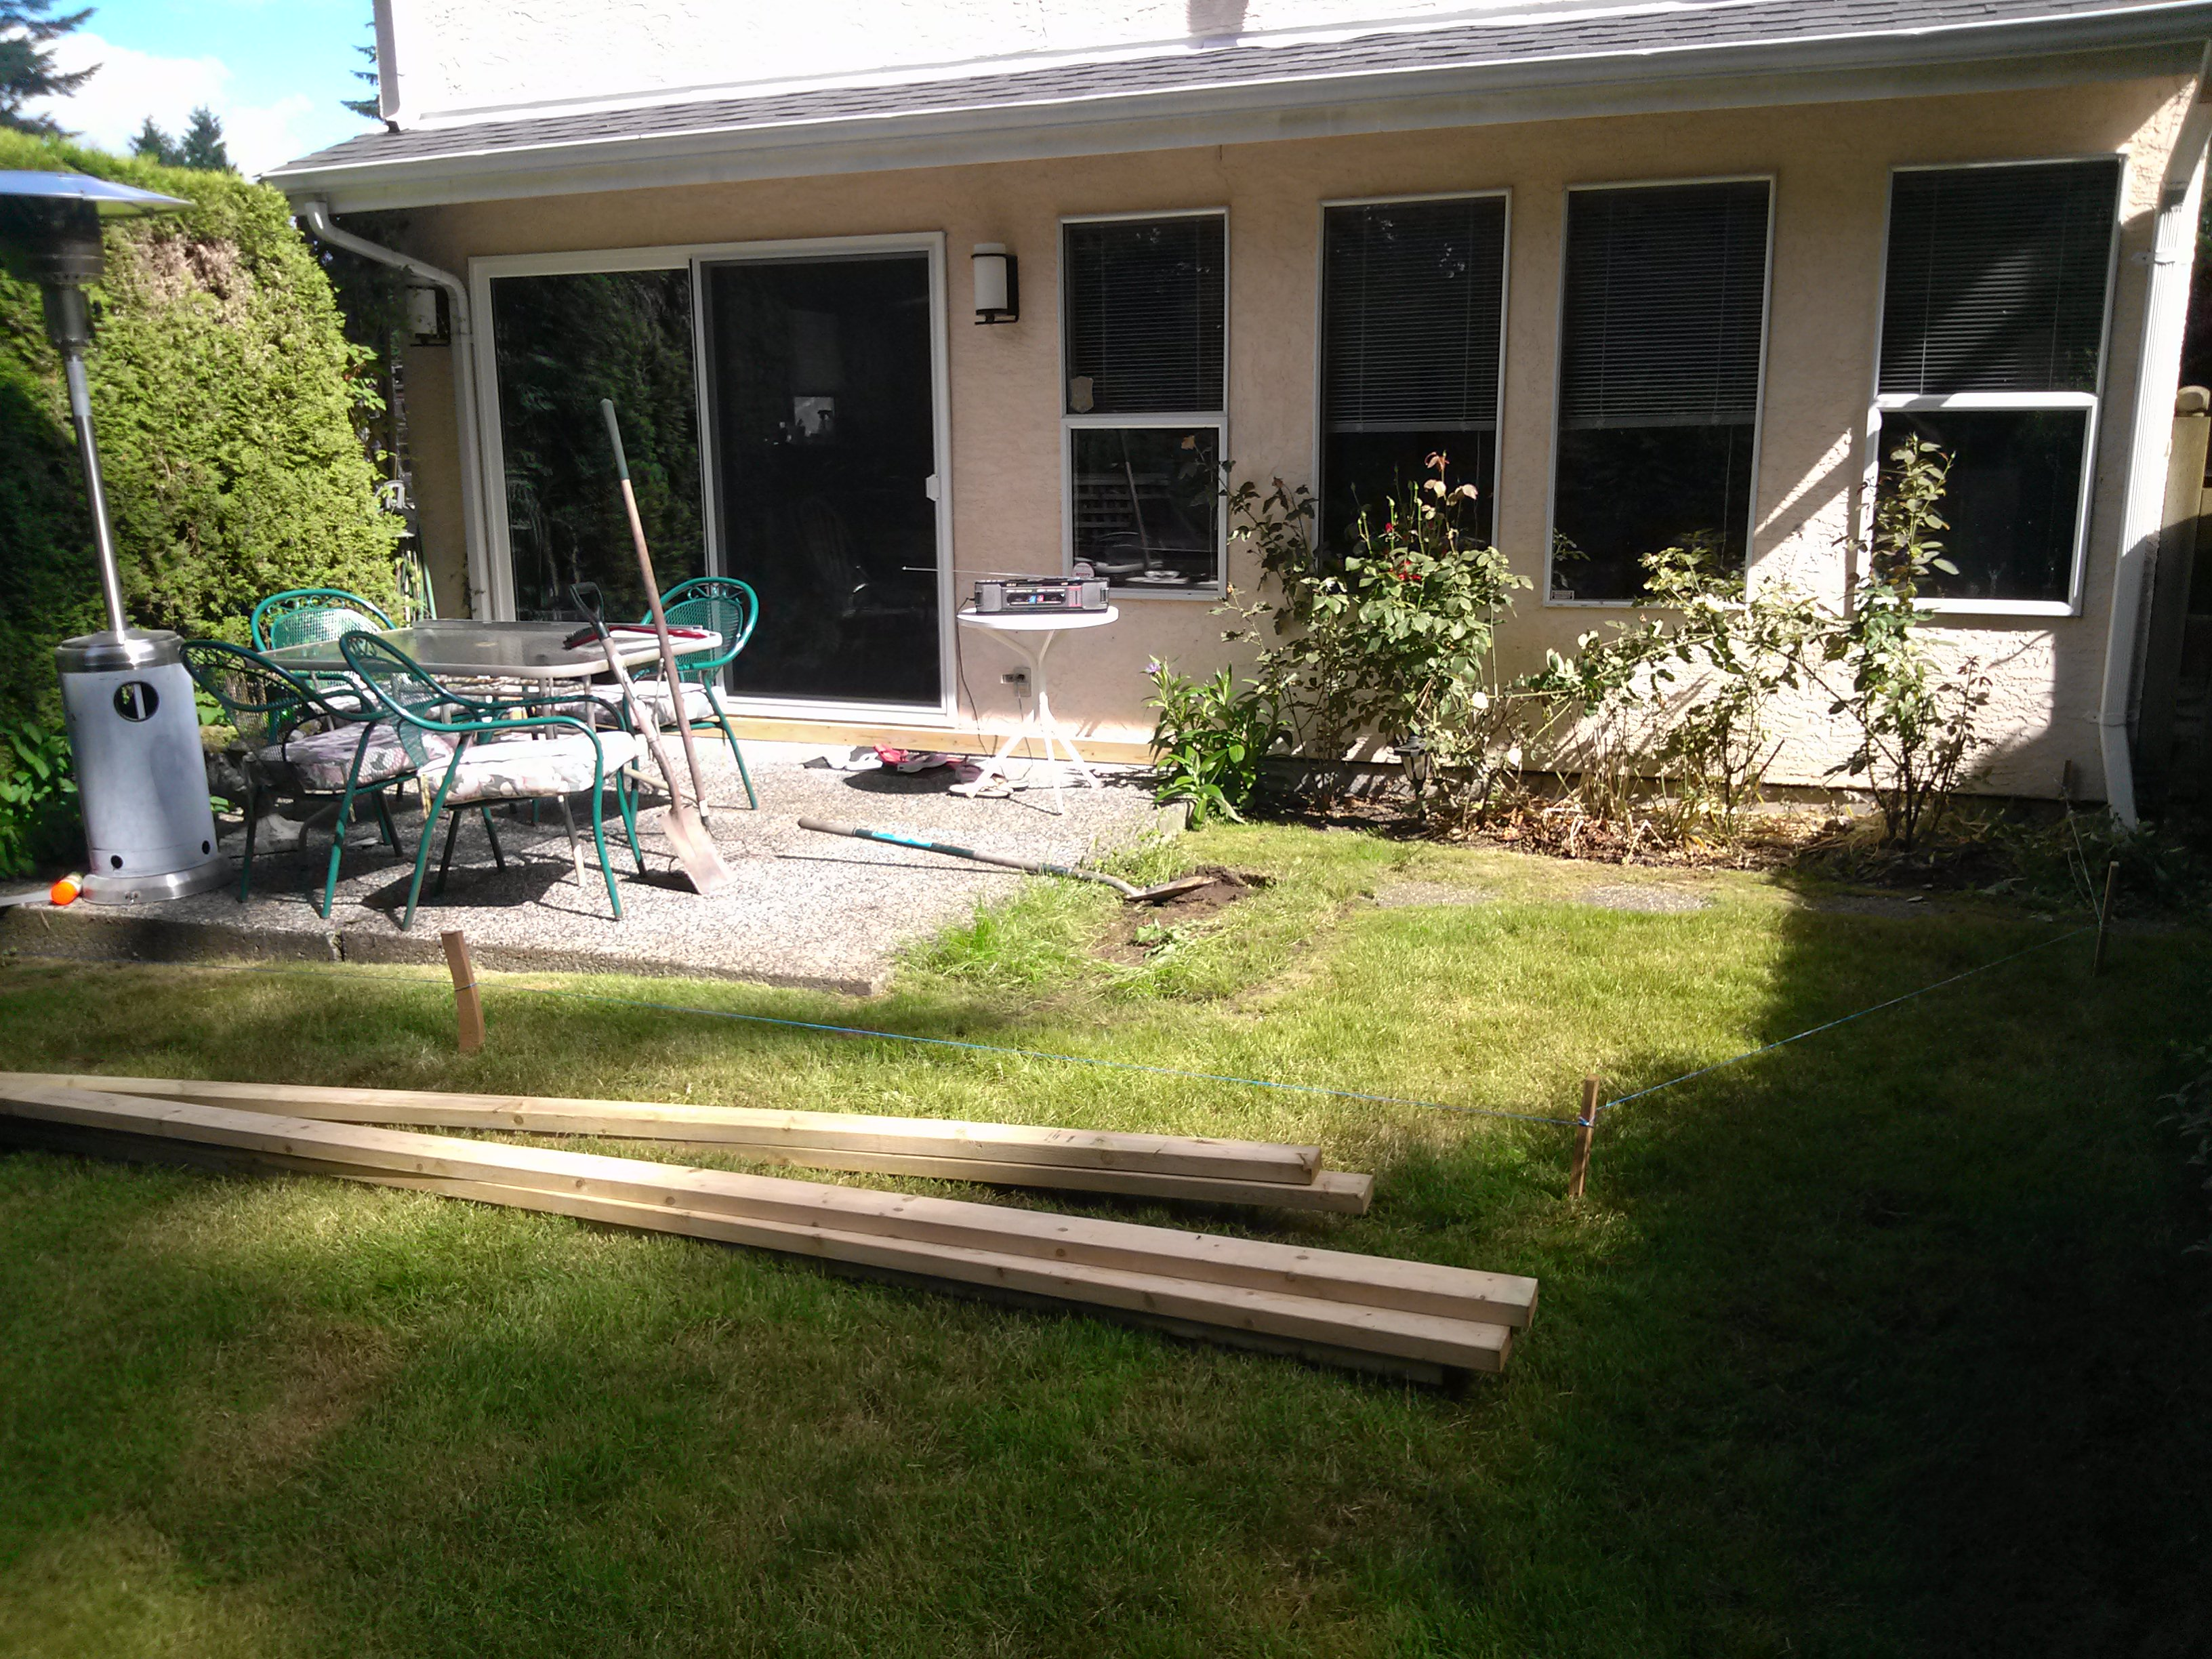 Home Repairs - Deck Before